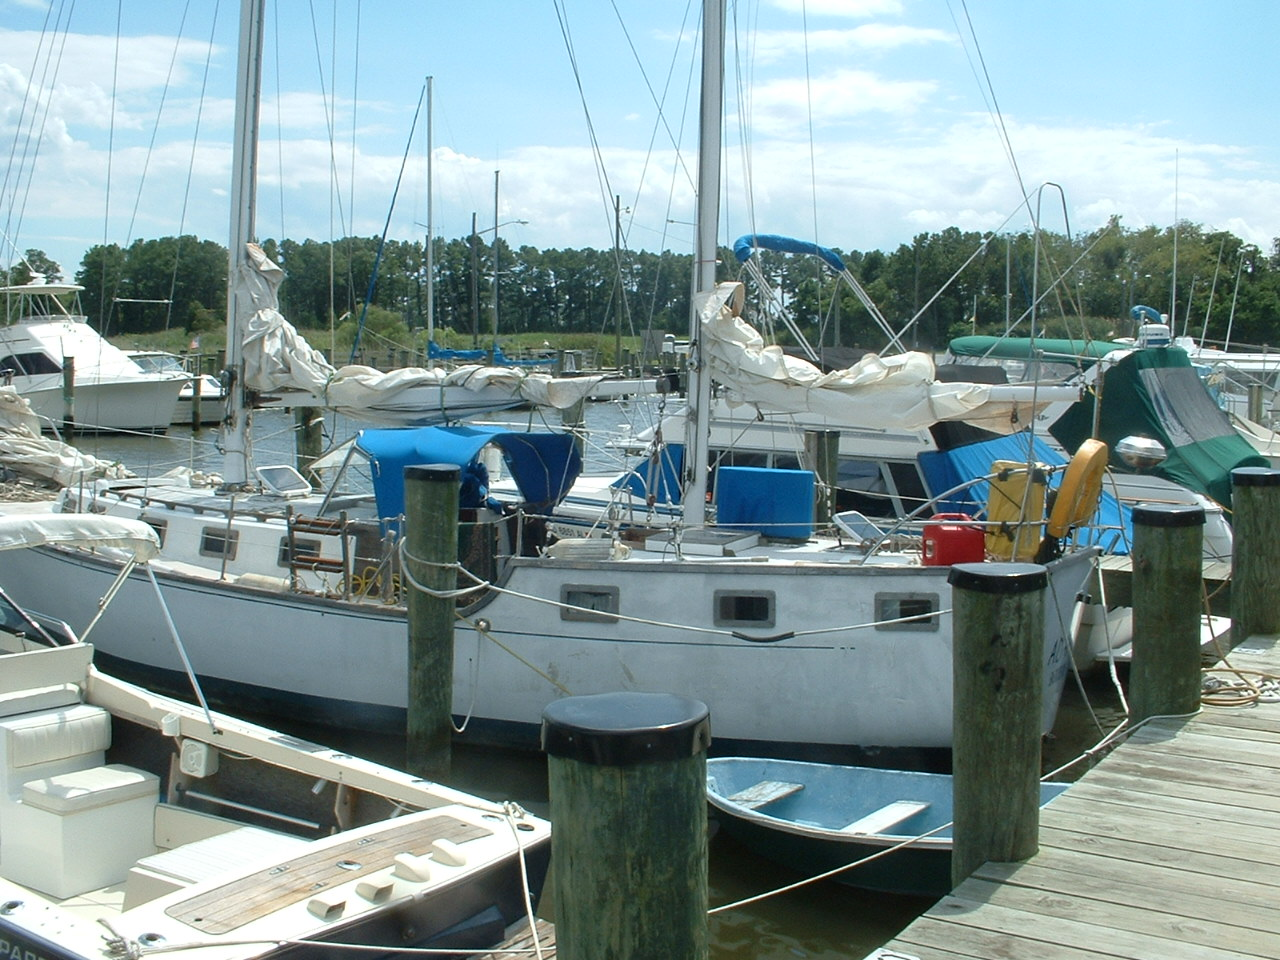 Click image for larger version  Name:Boat pixs Aug 11 007.jpg Views:196 Size:331.2 KB ID:6285